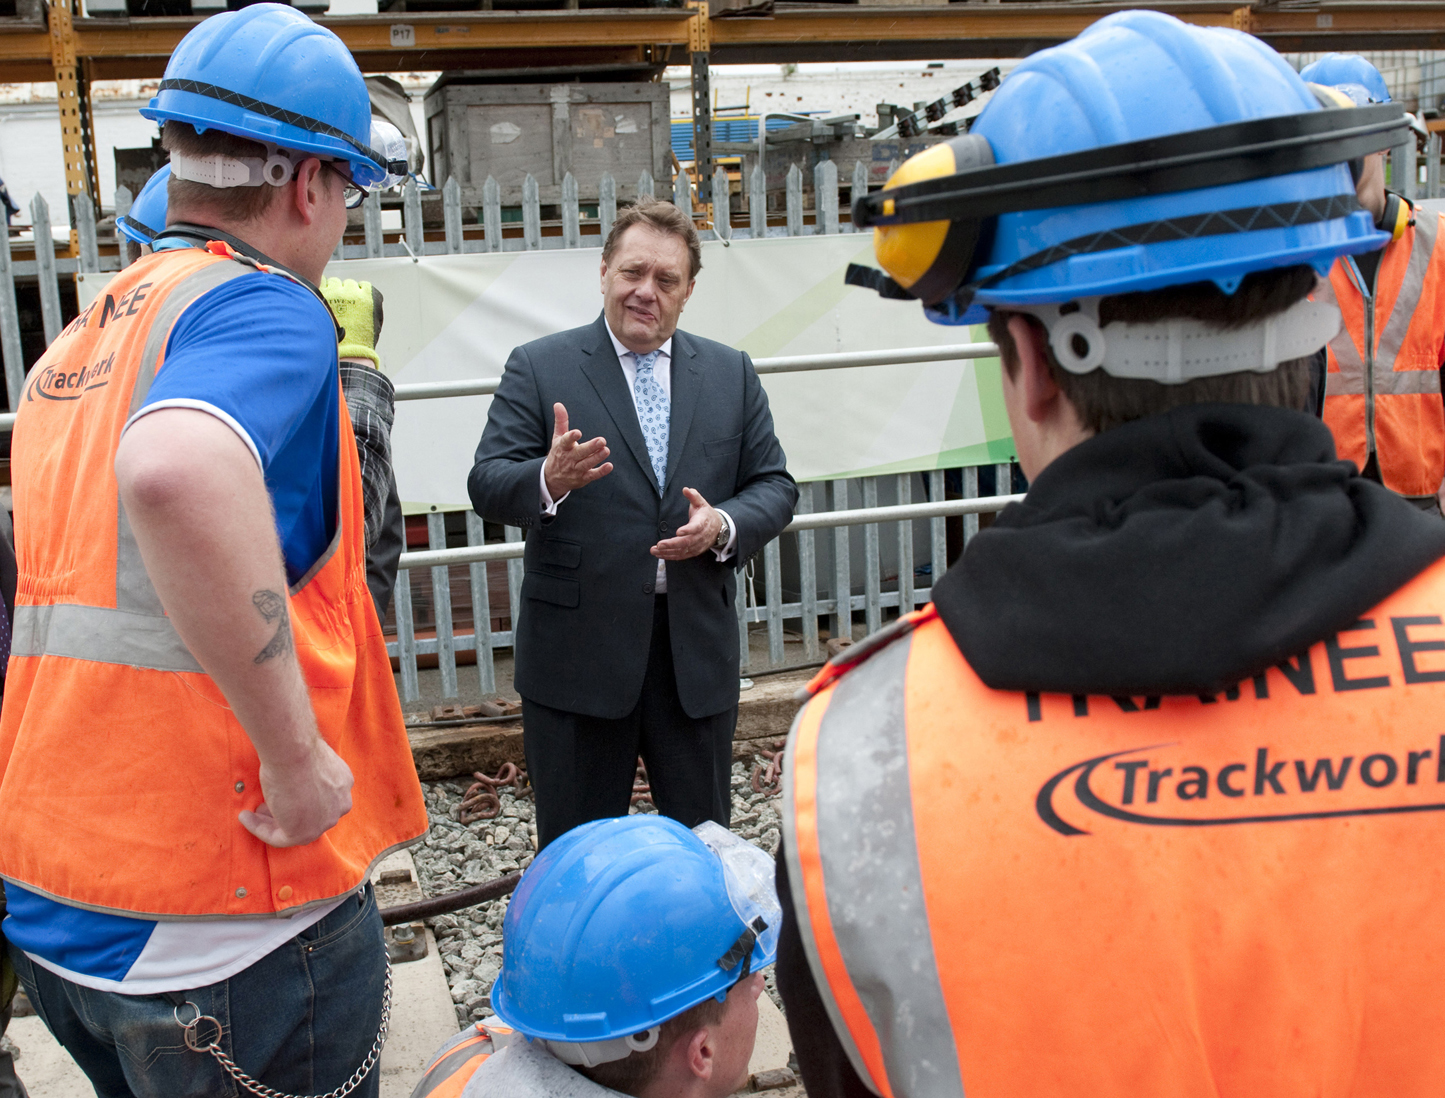 Mr Hayes in discussion with rail apprentices